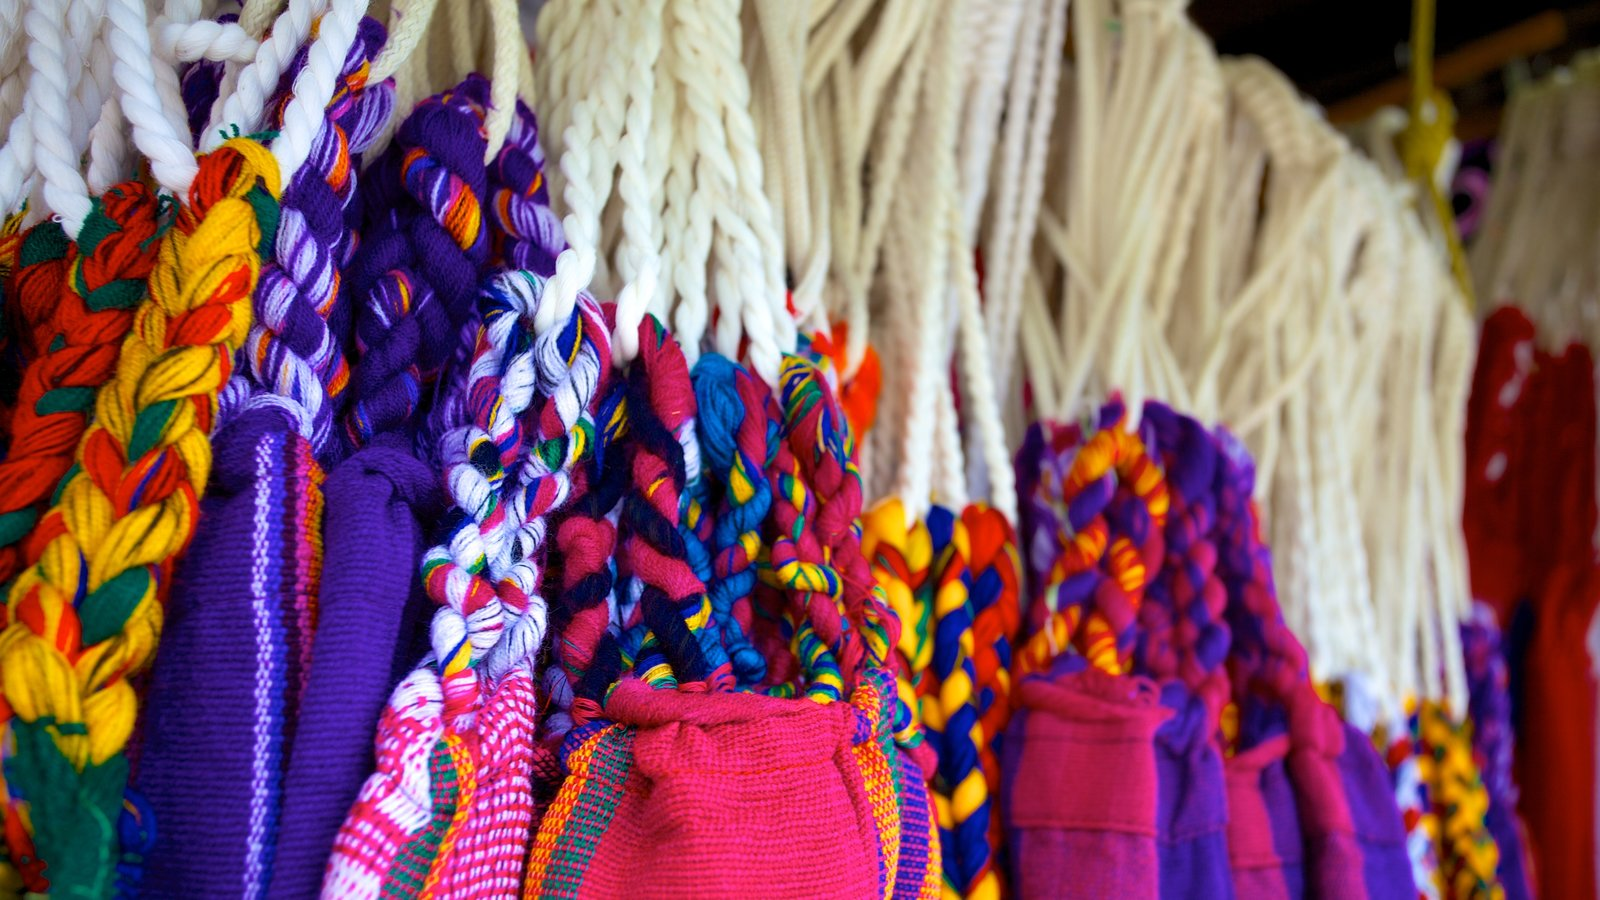 Luquillo Beach showing fashion and markets